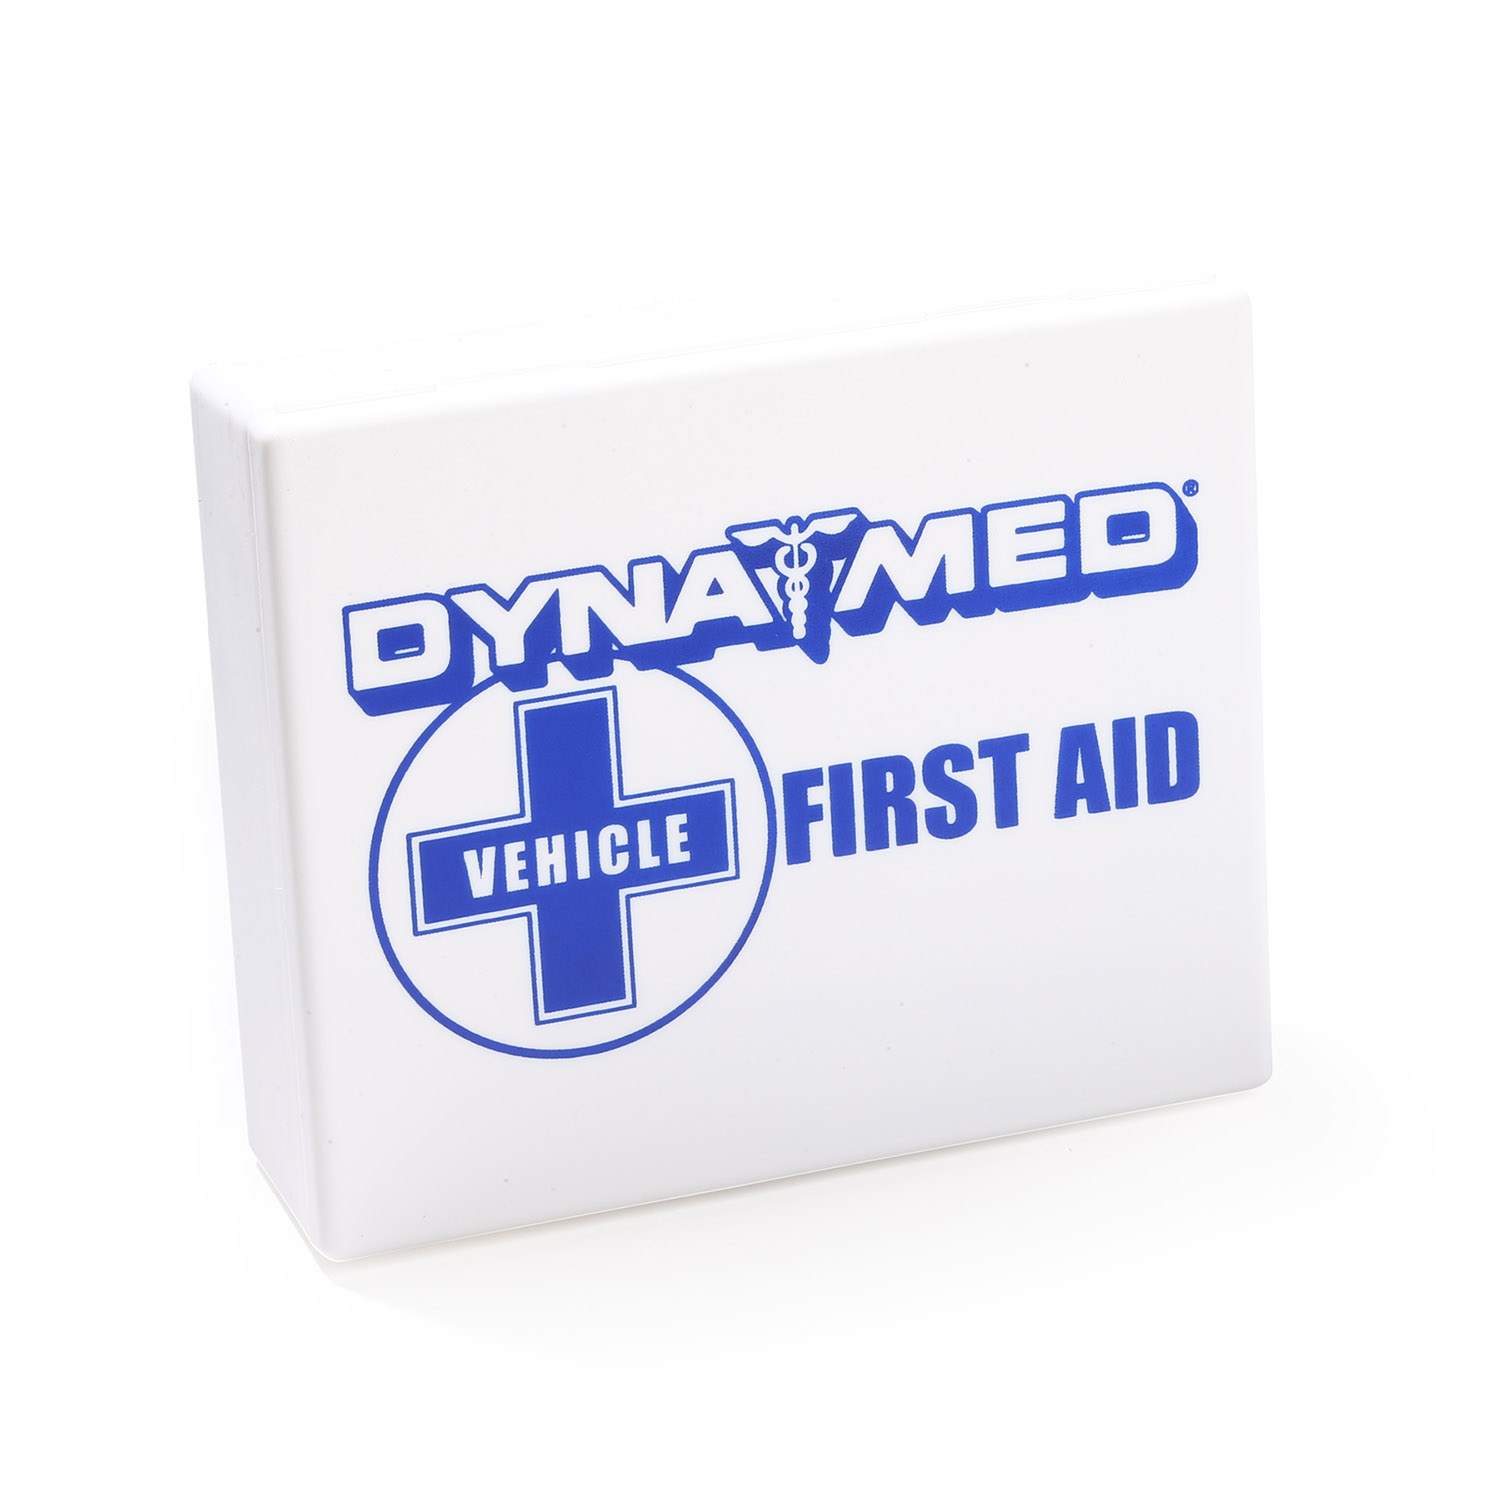 Dyna Med Vehicle First Aid Kit